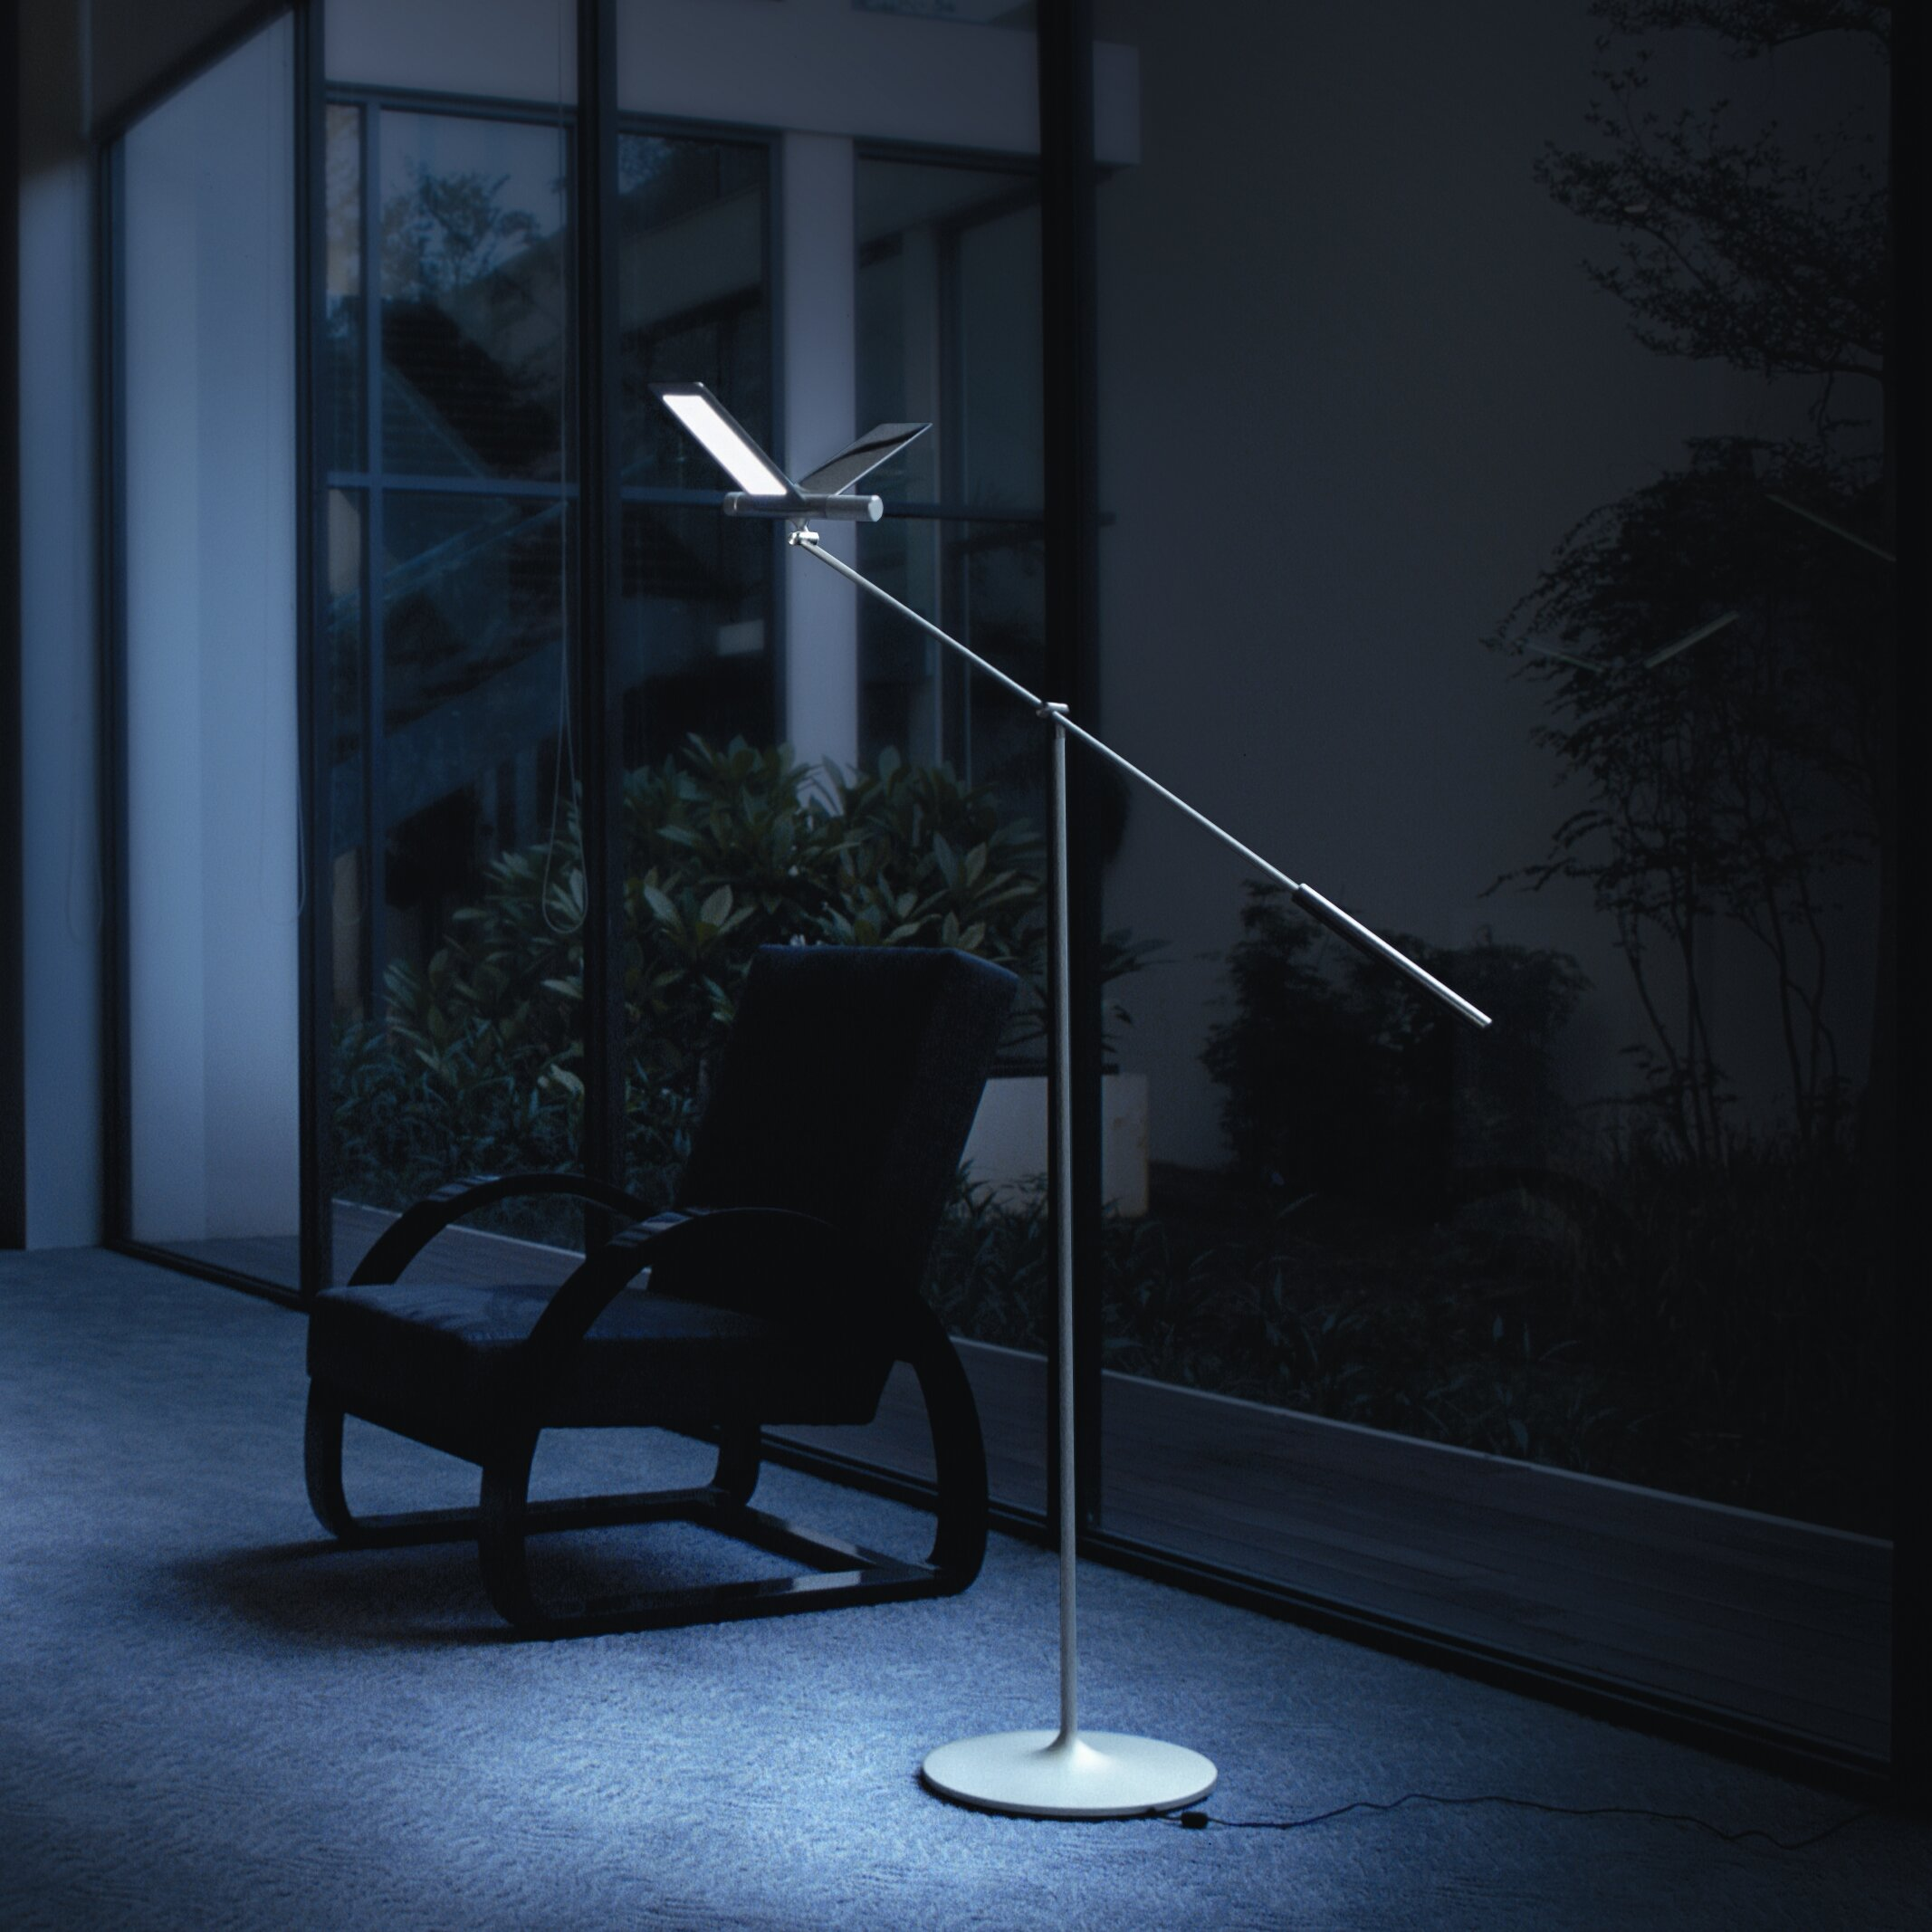 Qisdesign Seagull 64 8 Led Task Floor Lamp Wayfair